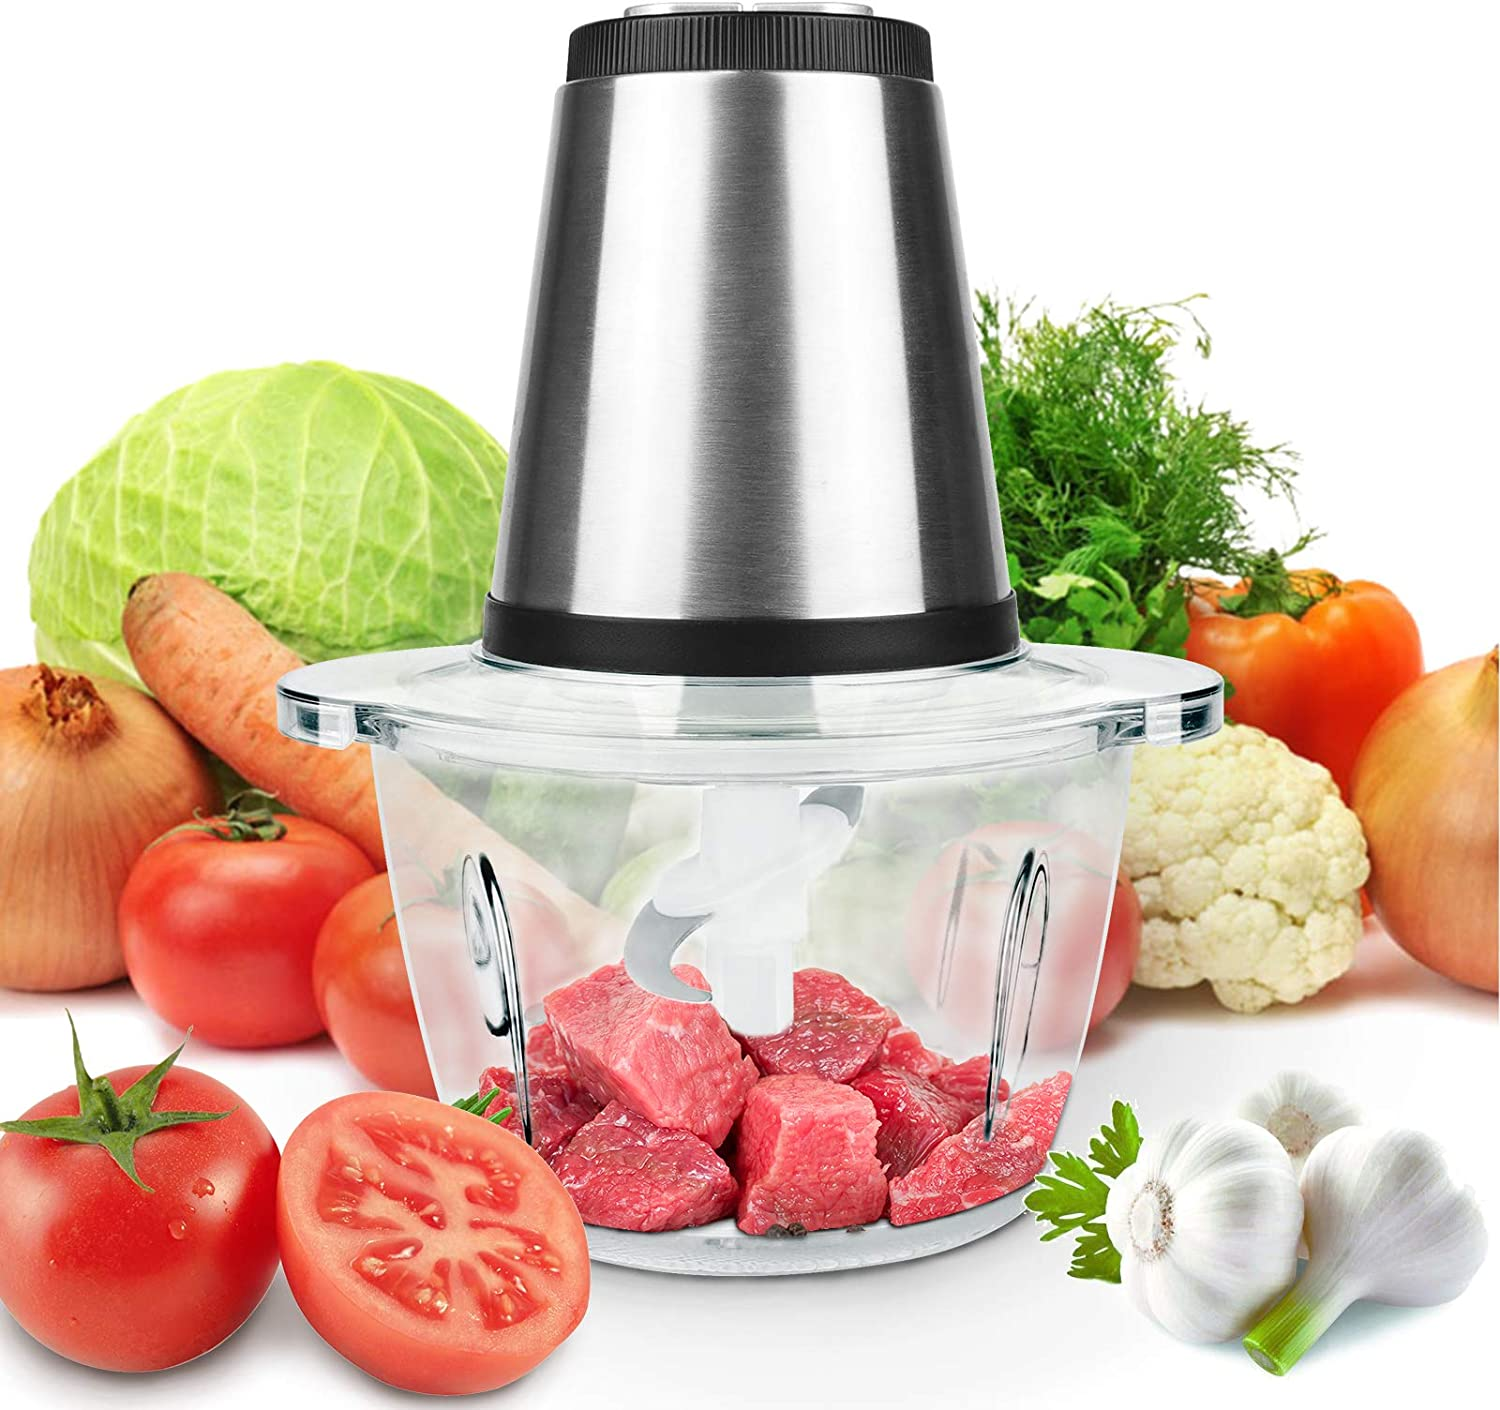 Electric Food Processor, 5-Cup 1.2L Meat Vegetable Fruit Chopper with 4 Detachable Stainless Steel Blades Fast & Slow 2 Speeds 230W